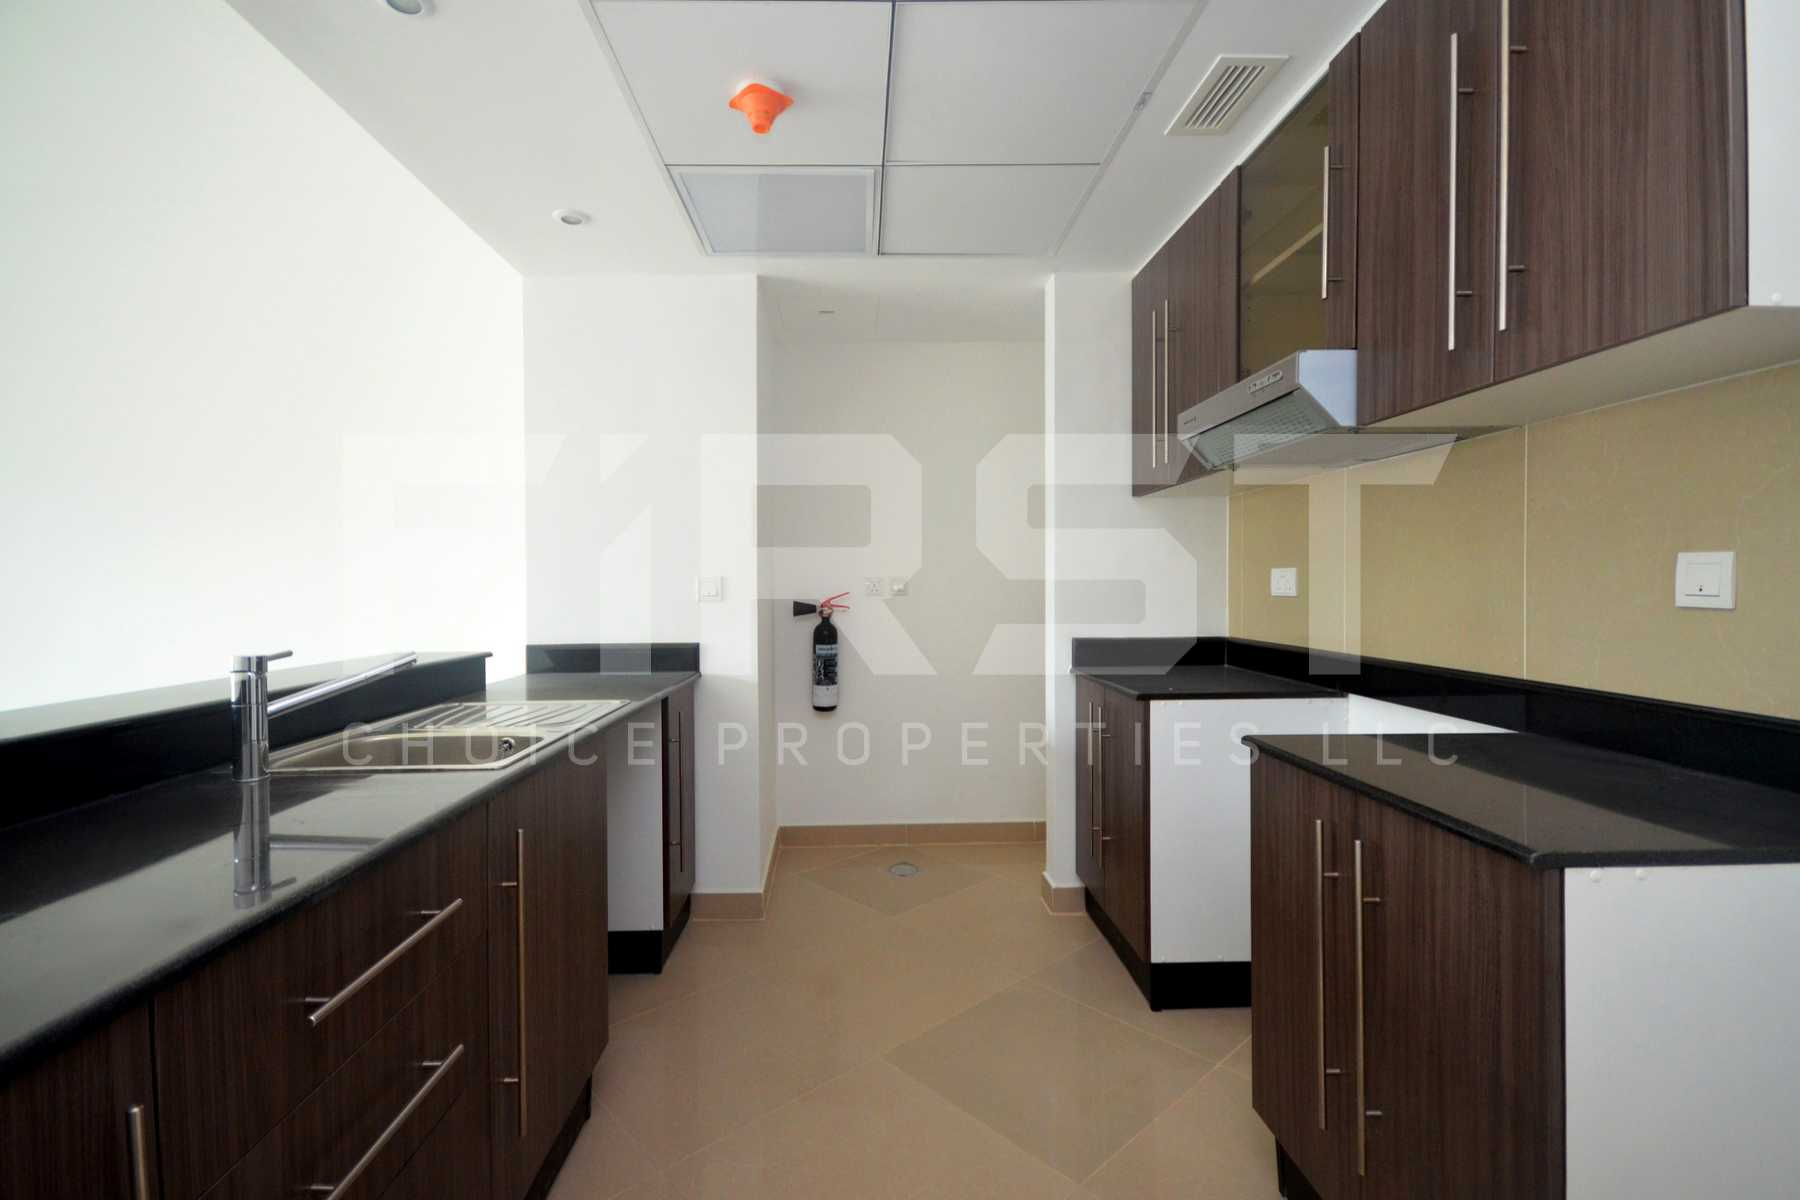 5. Internal Photo of 1 Bedroom Apartment Type C in Al Reef Downtown Al Reef Abu Dhabi UAE 103 sq.m 1108 sq.ft (4).jpg